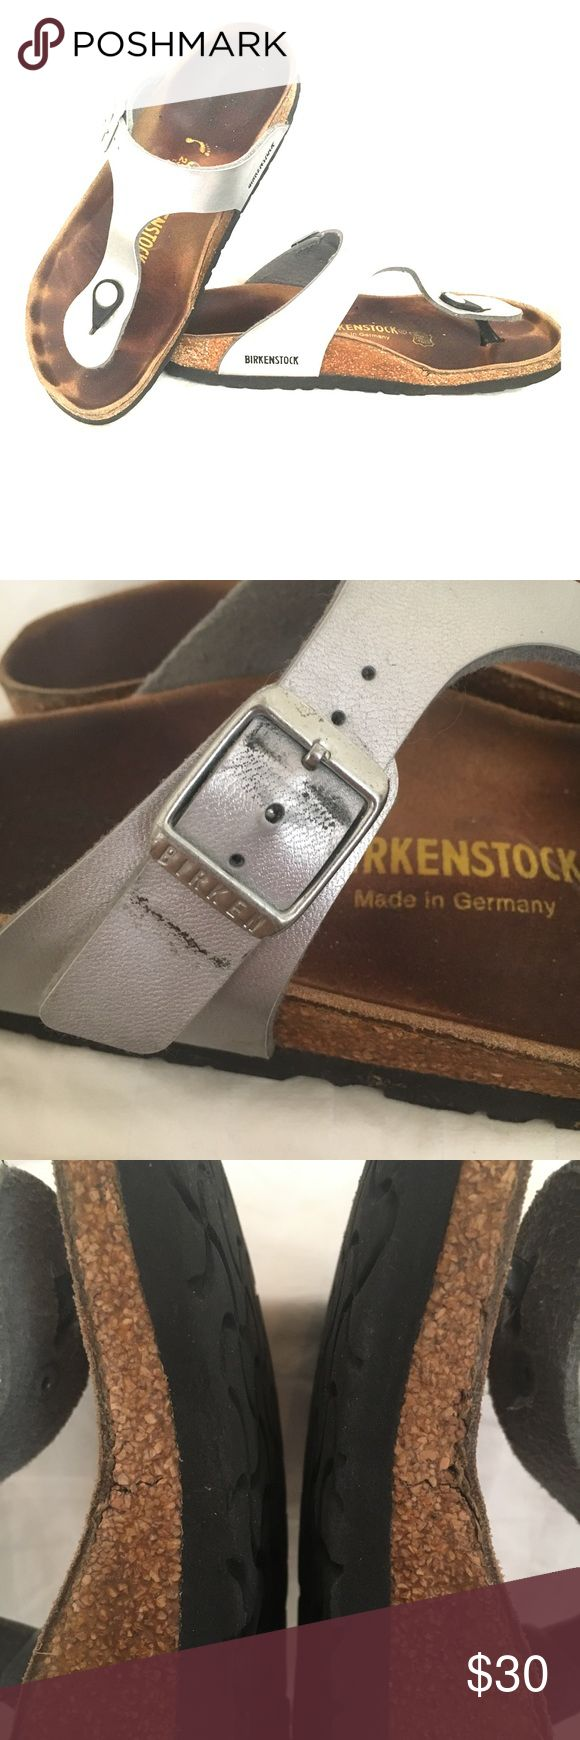 Silver Birkenstock Gizeh Size 36 Silver Birkenstock Gizeh Sandals size 36 narrow.  Treat your feet to the most comfortable sandals!  Please note all details of condition. Birkenstock Shoes Sandals